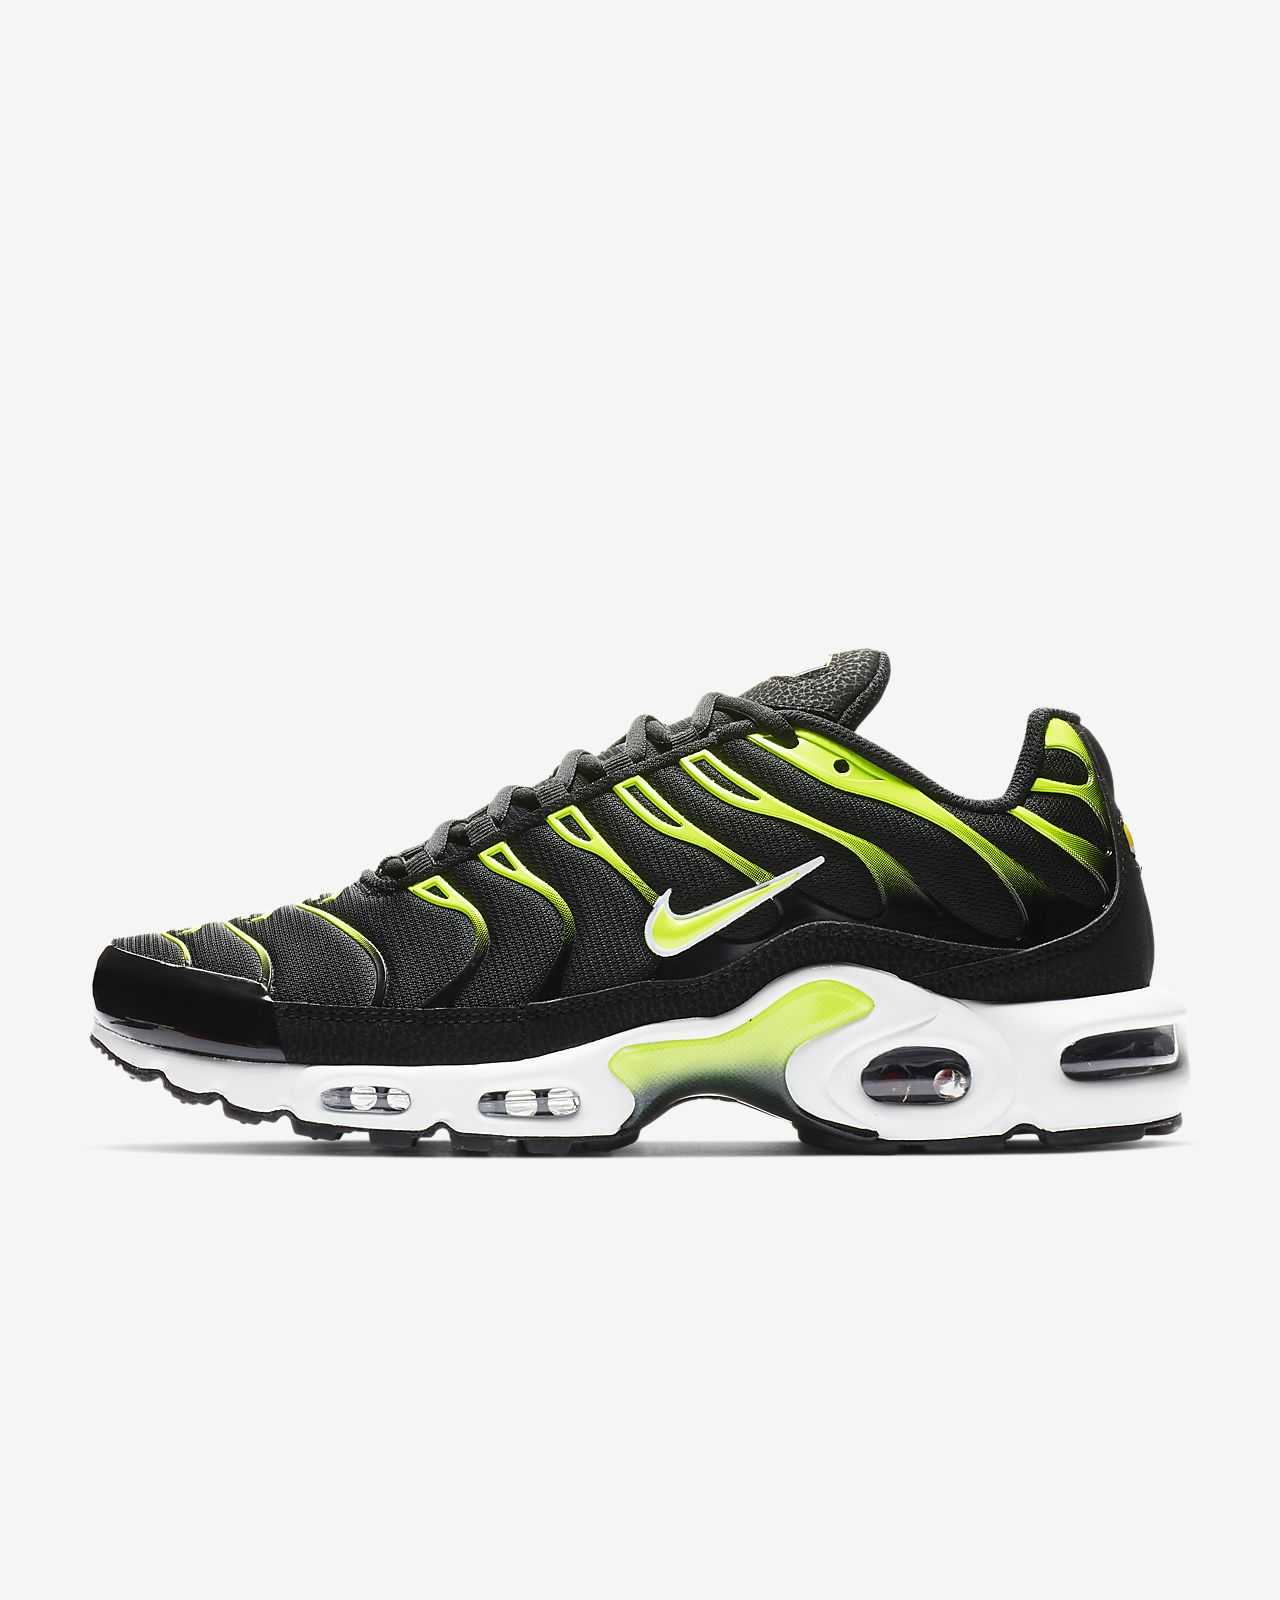 0a9109426fd Nike Air Max Plus Men s Shoe. Nike.com CA